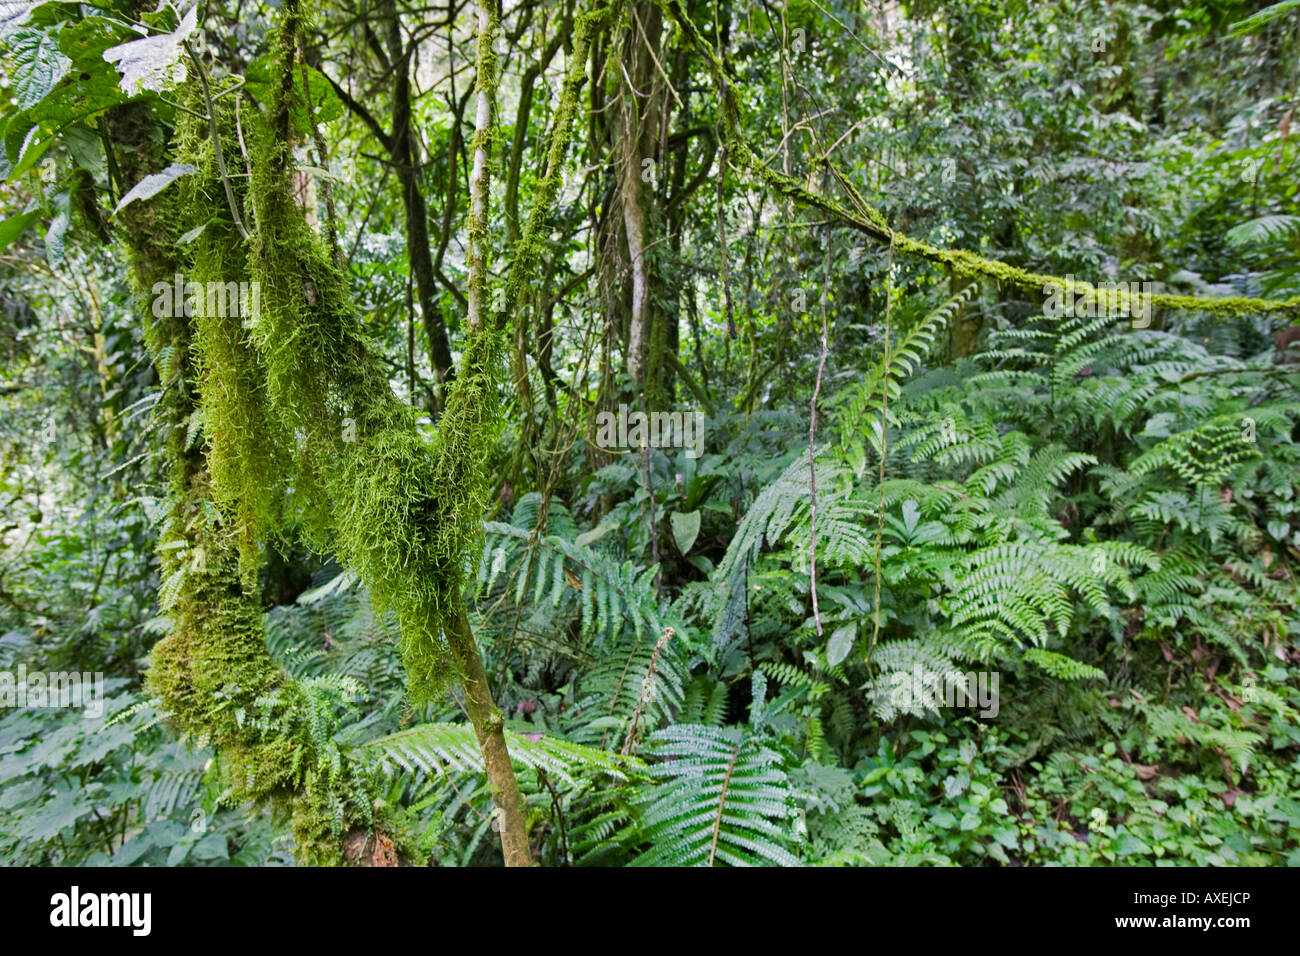 What plants grow in the equatorial forests